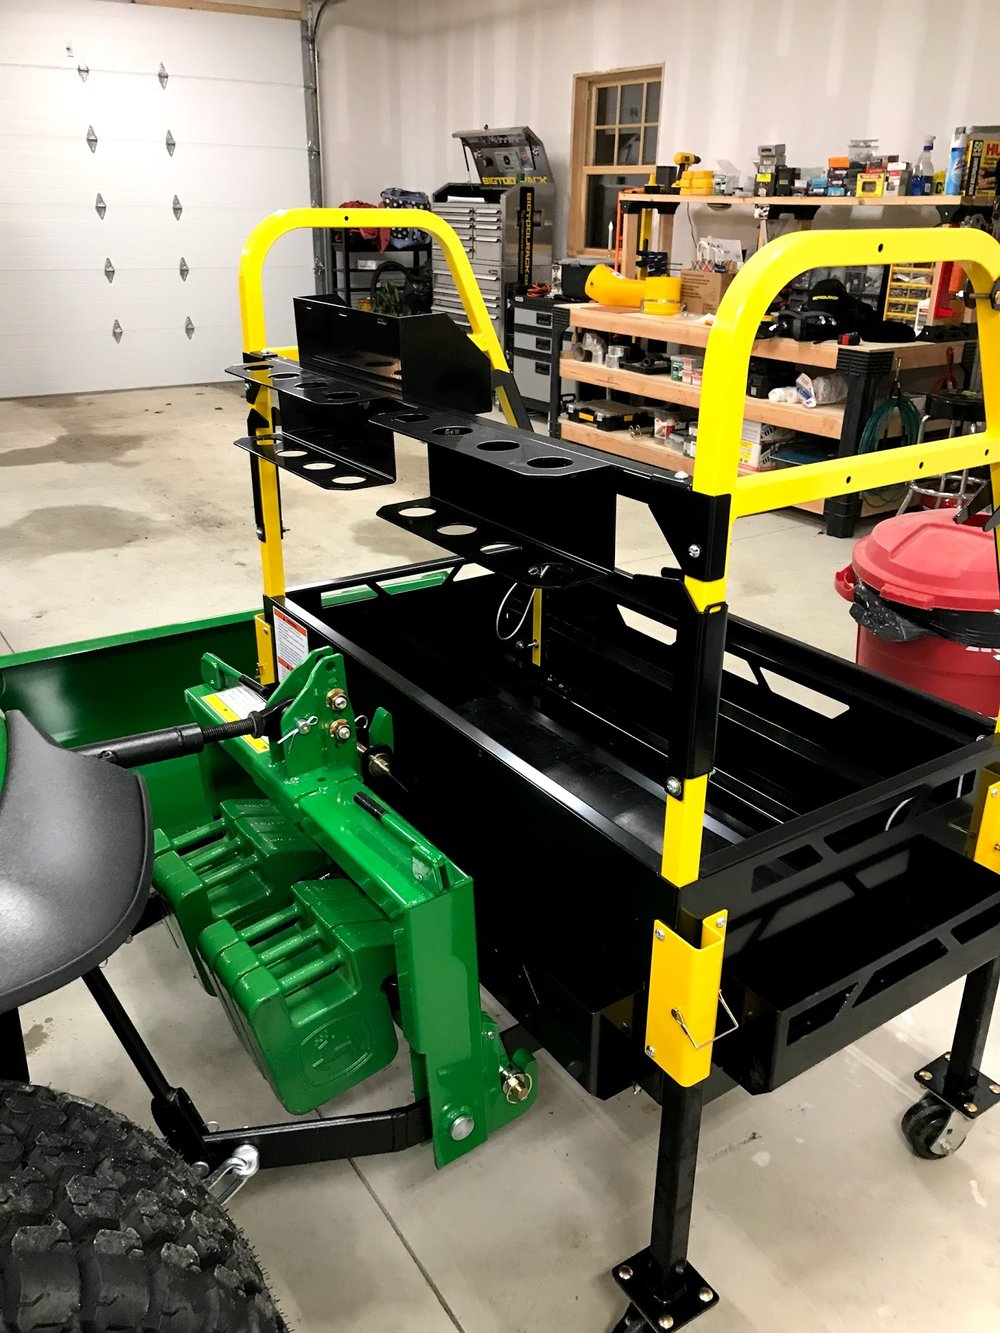 Bigtoolrack on a John Deere 2038R Imatch and 6 42 LB suitcase weights